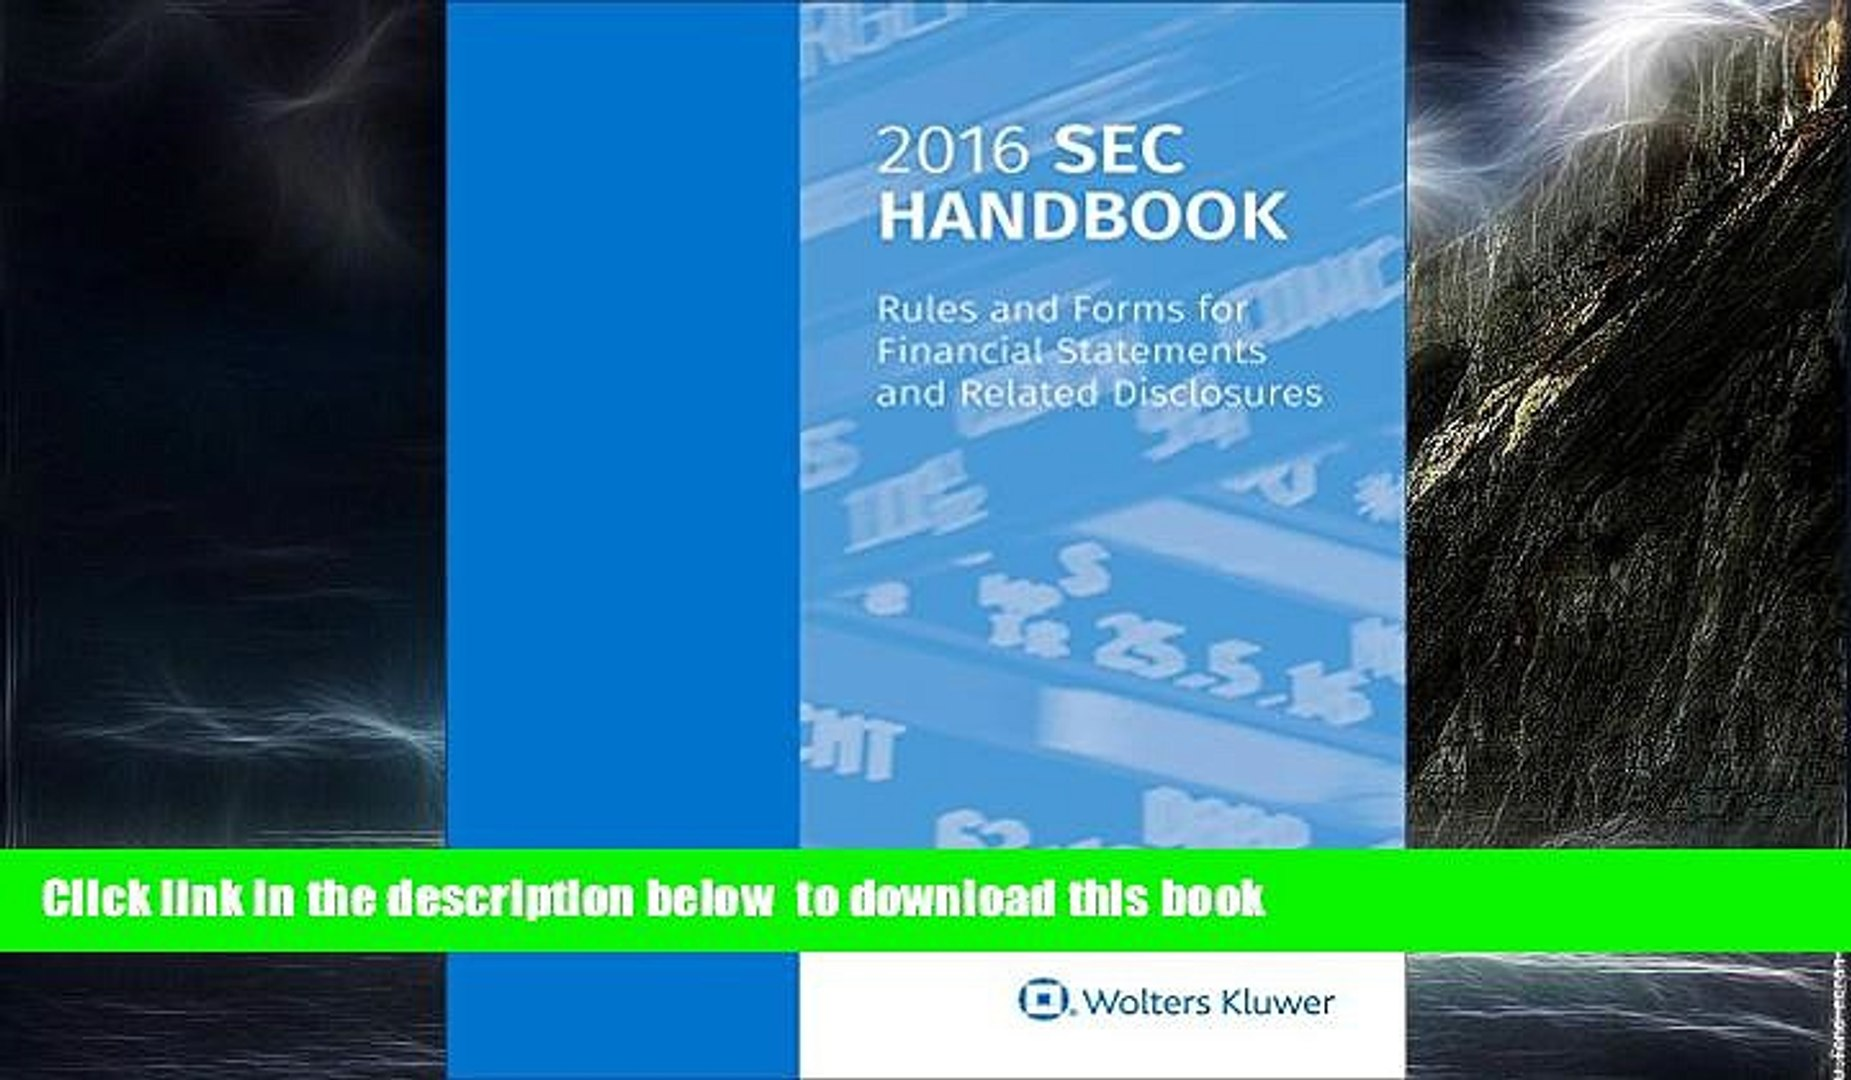 Pre Order 2016 SEC Handbook: Rules and Forms for Financial Statements and Related Disclosures